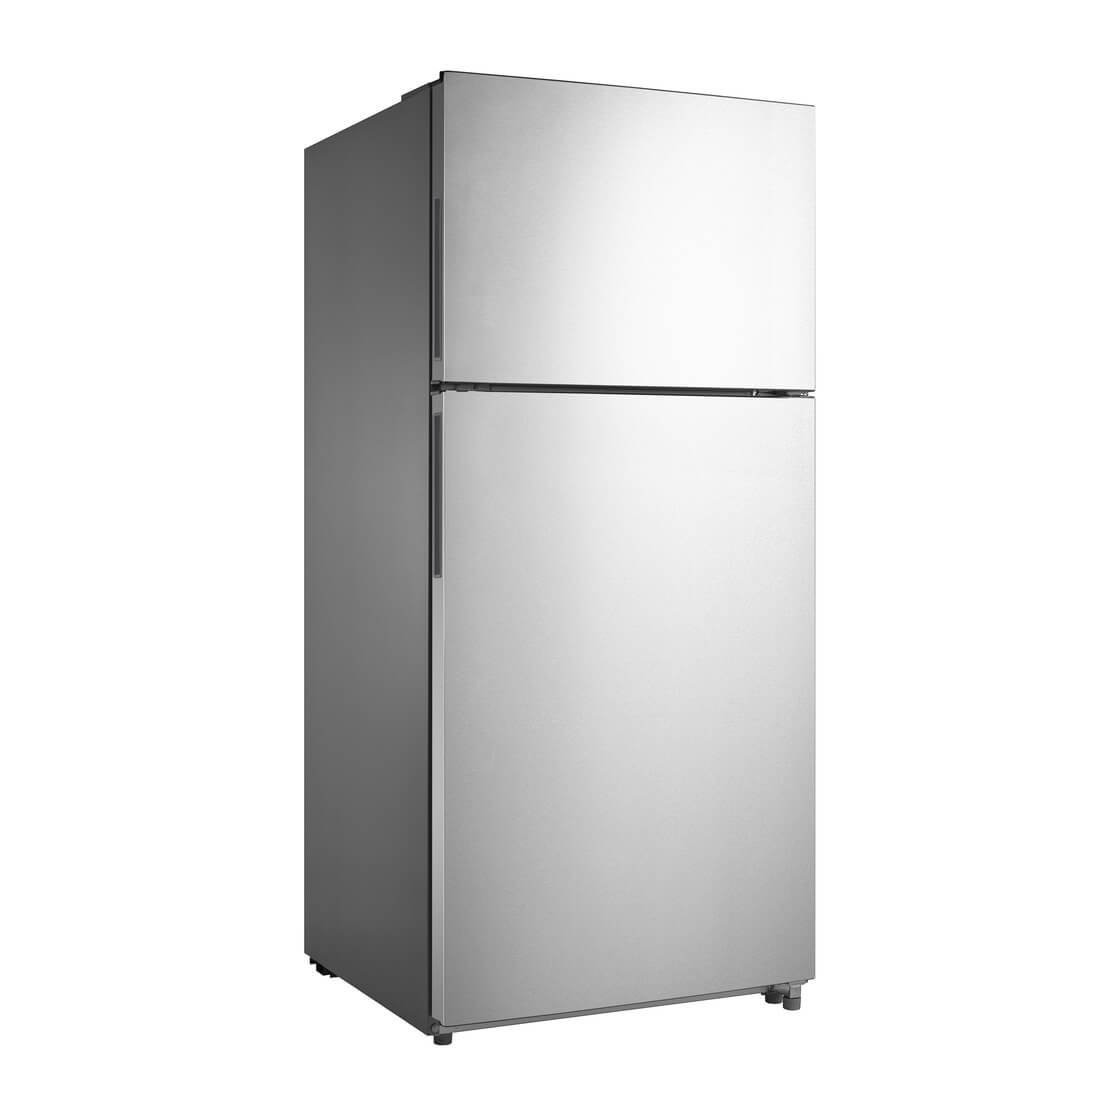 18.0 cu. ft. Energy Star Top Mount Refrigerator - Stainless Steel